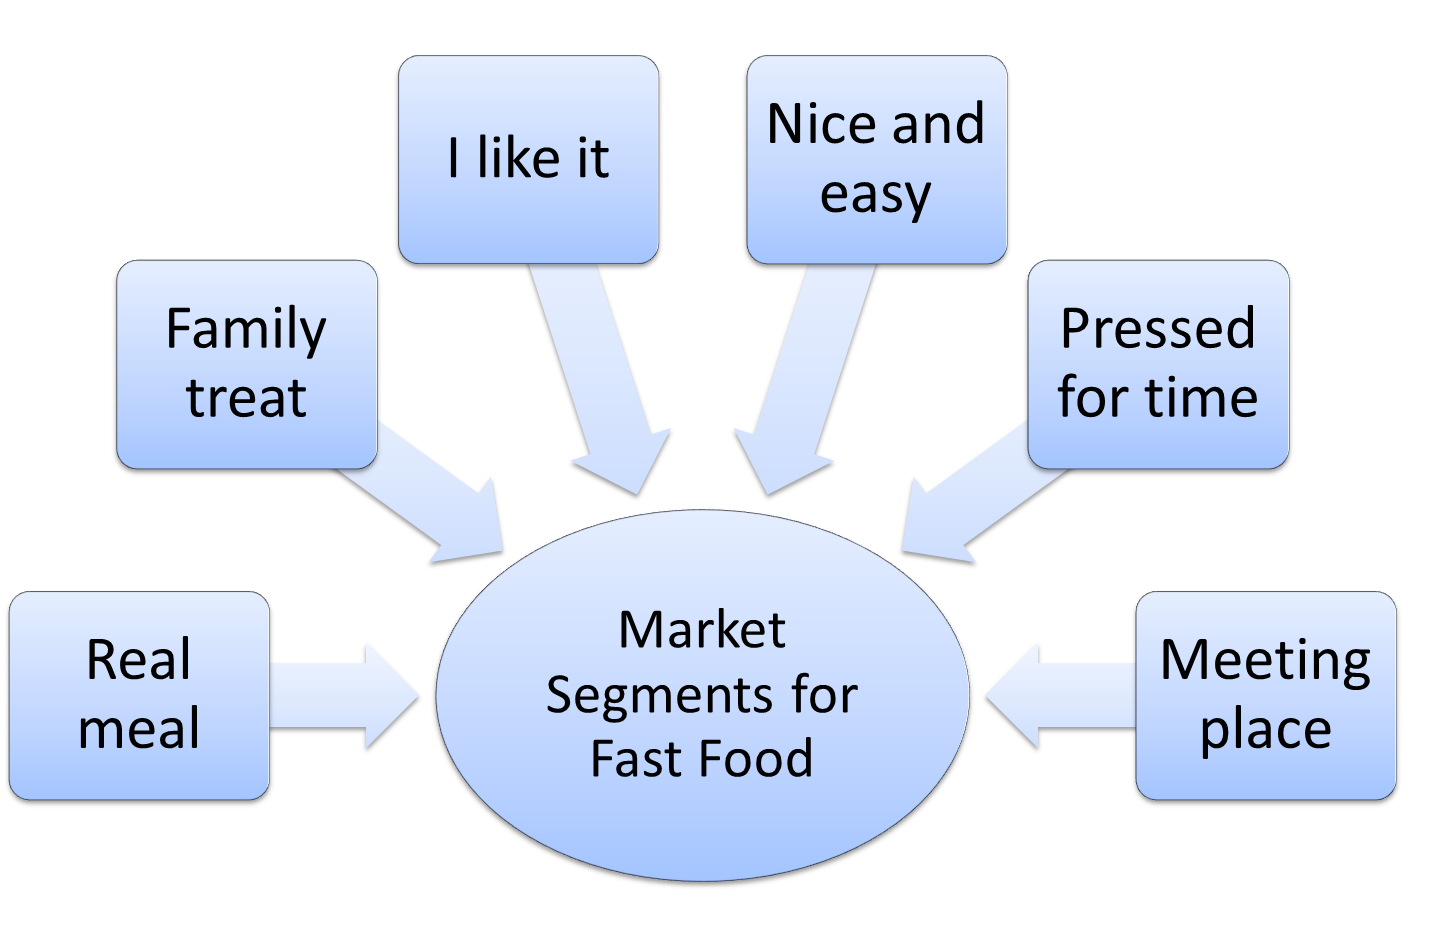 Market segmentation example for fast food -